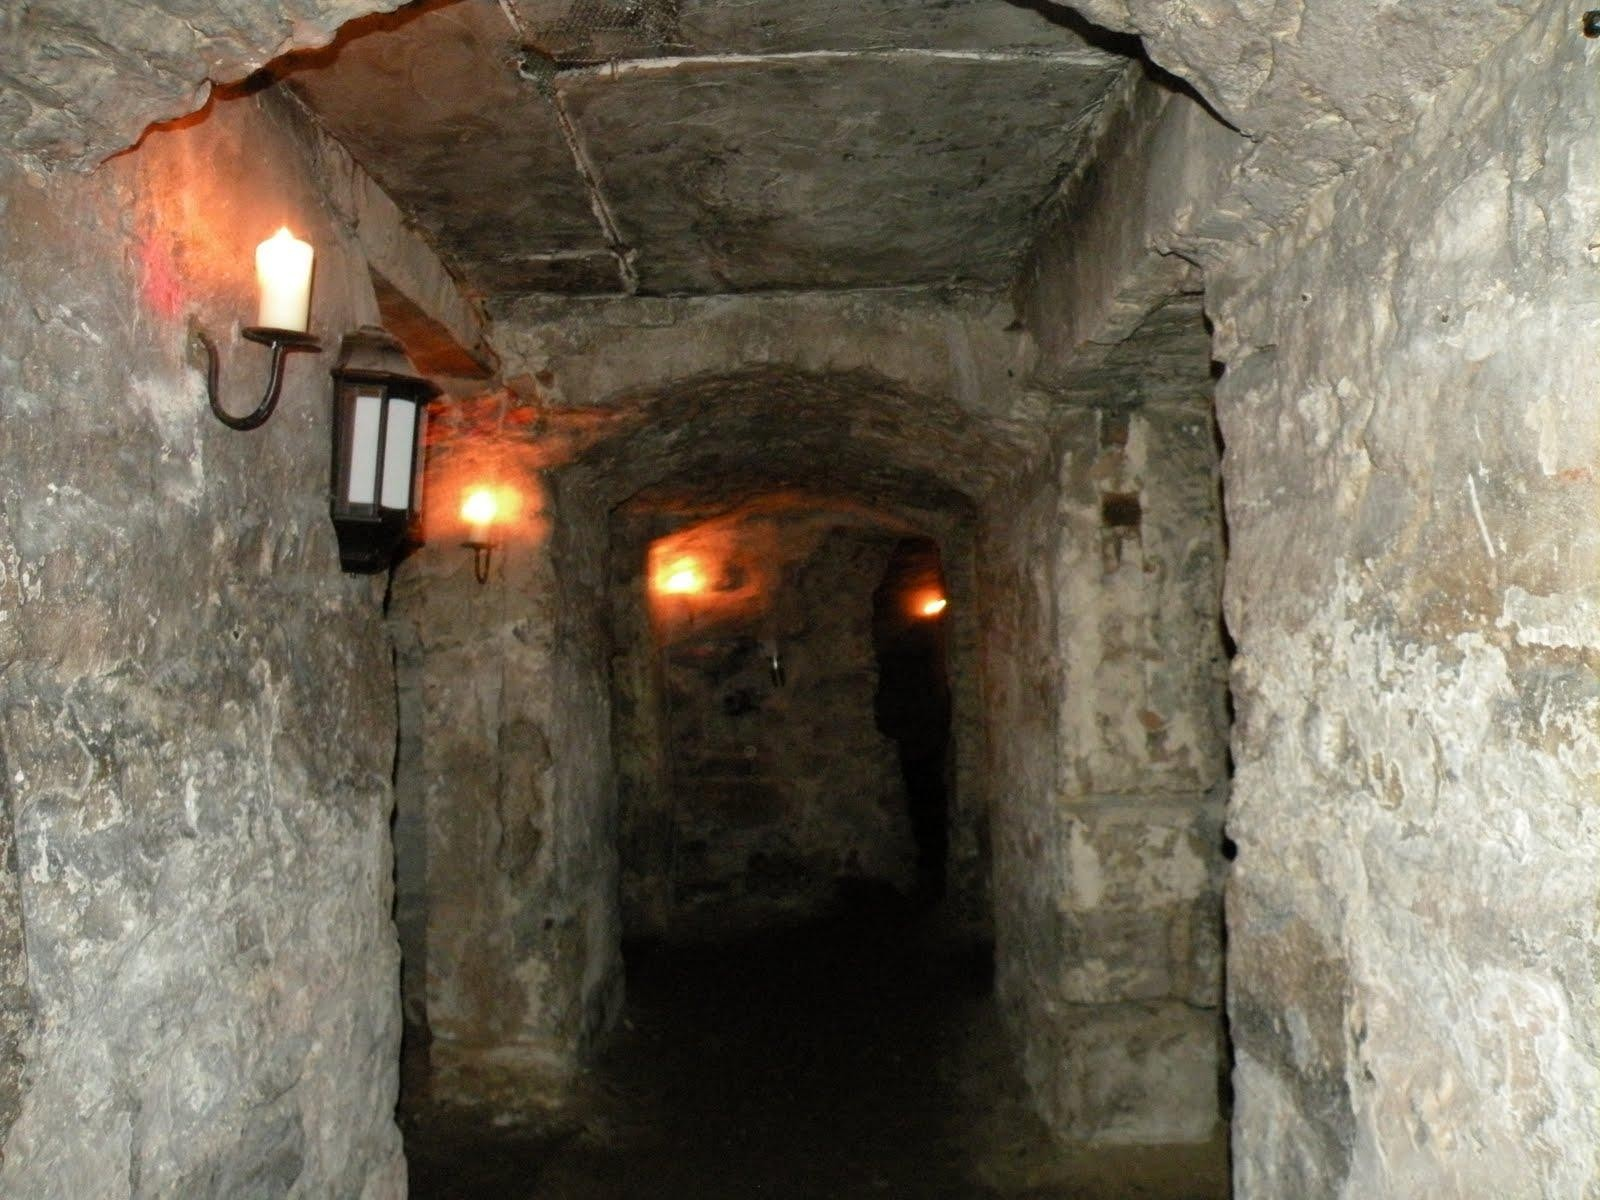 Edinburgh Vaults in Edinburgh, Scotland